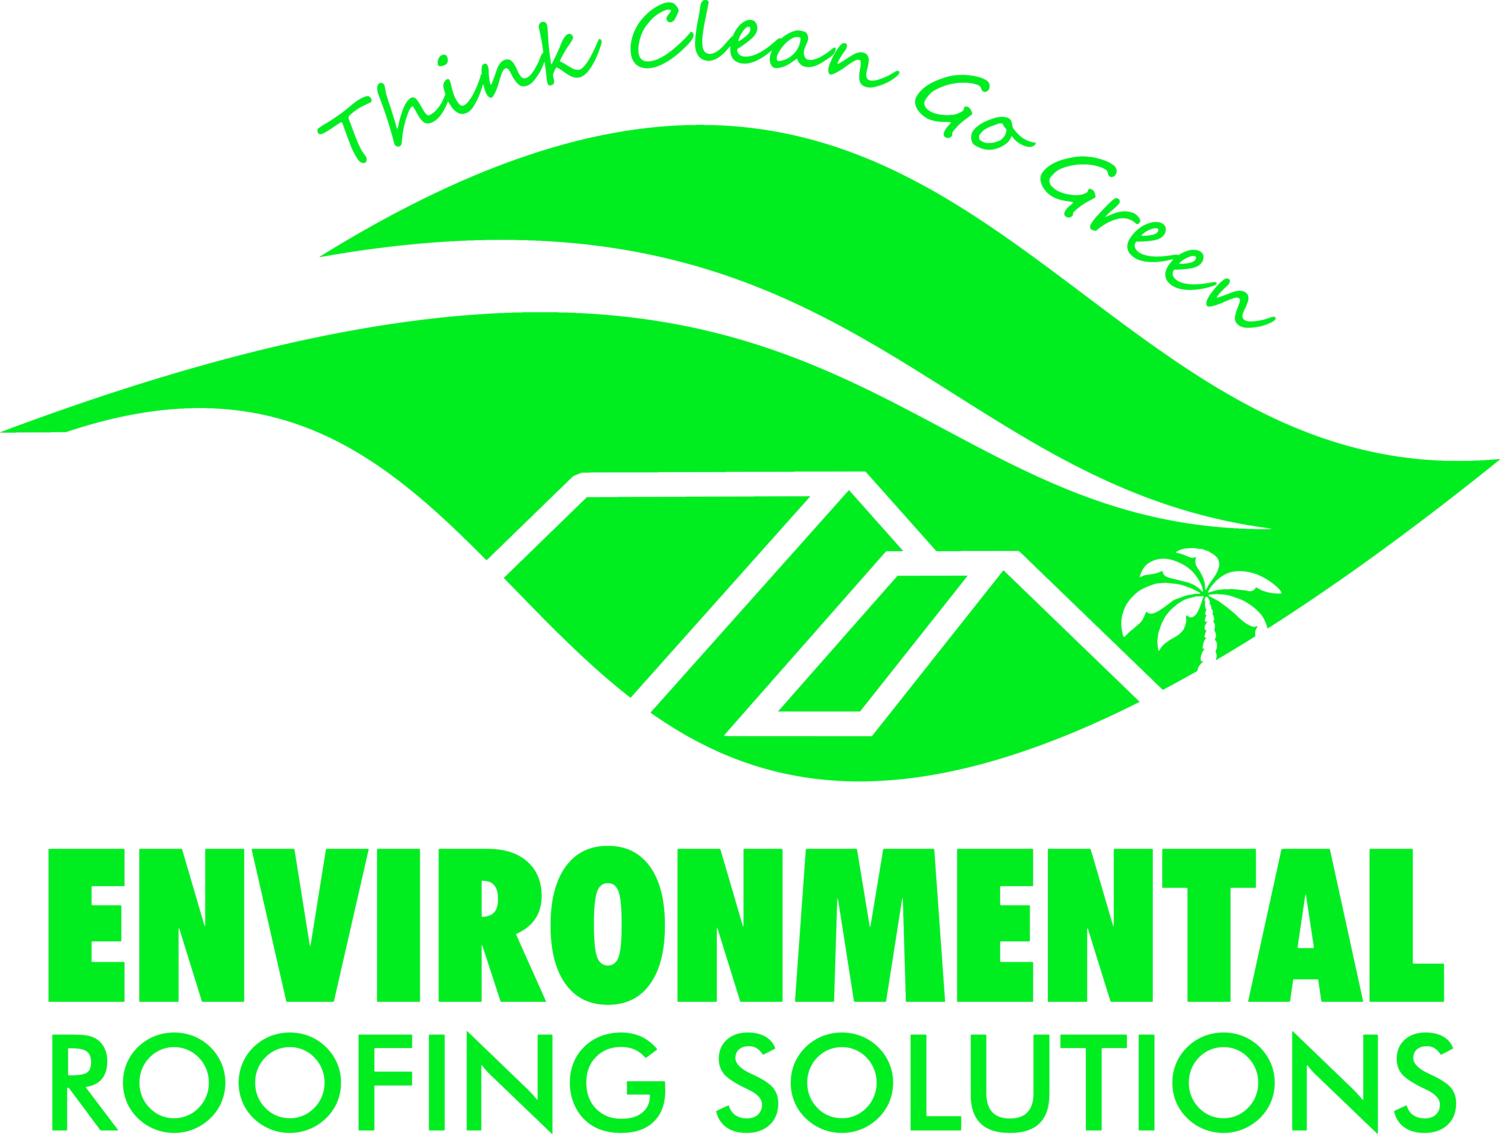 Environmental Roofing Solutions - Honolulu, Hawaii Roofing Company